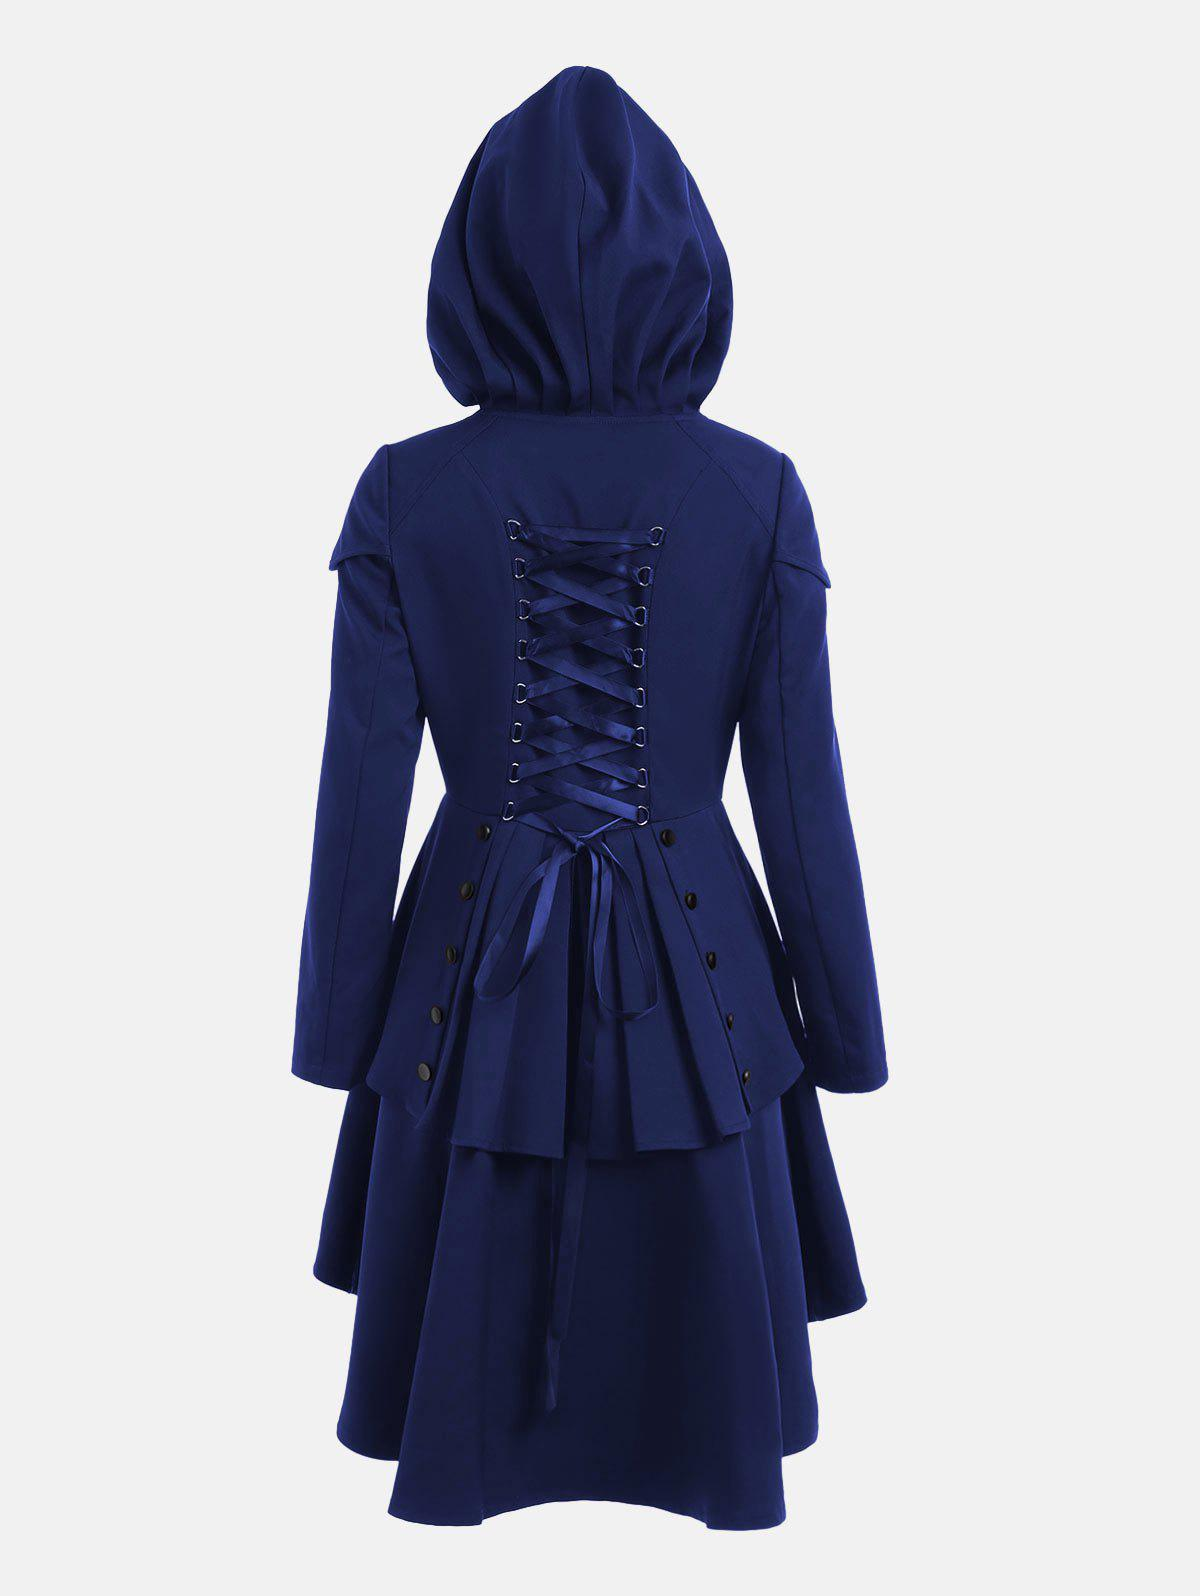 Lace Up Layered High Low Hooded CoatWOMEN<br><br>Size: M; Color: ROYAL; Clothes Type: Others; Material: Polyester; Type: High Waist; Shirt Length: Long; Sleeve Length: Full; Collar: Hooded; Closure Type: Single Breasted; Pattern Type: Solid; Embellishment: Criss-Cross; Style: Gothic; Season: Fall,Spring; With Belt: No; Weight: 0.6600kg; Package Contents: 1 x Coat;